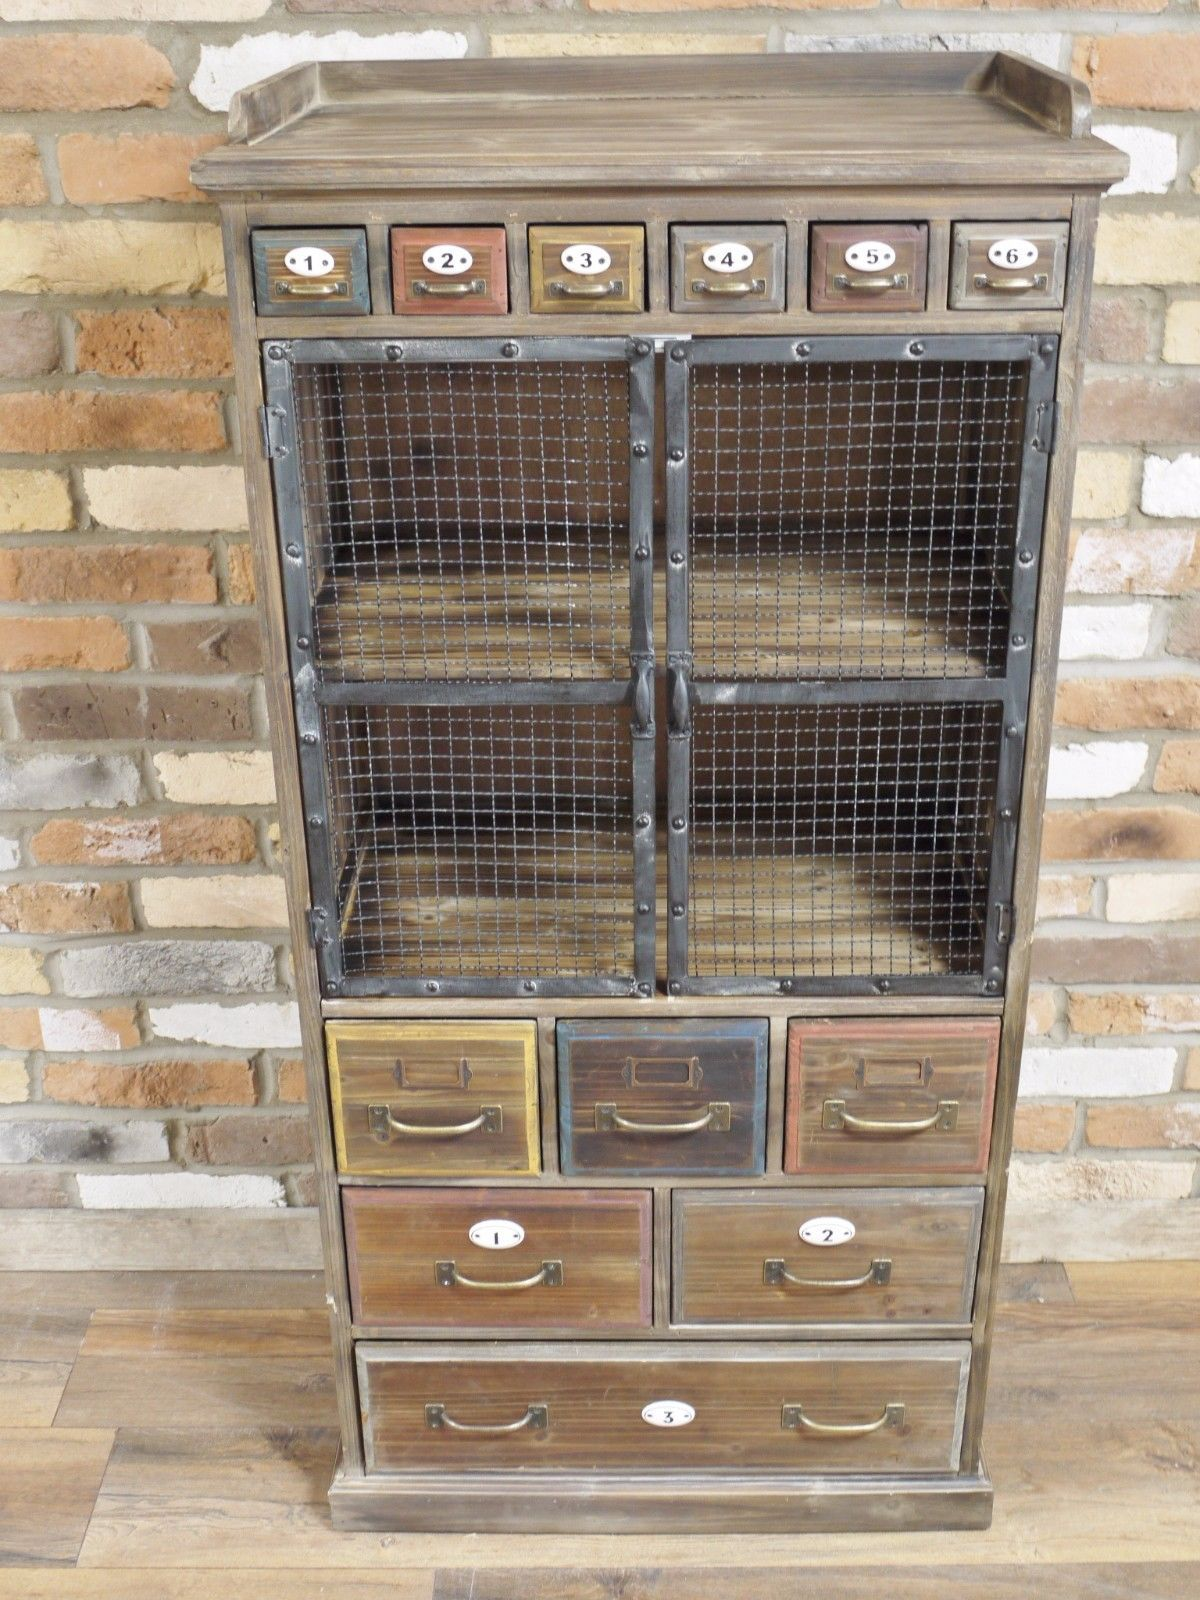 Industrial Vintage Details About Industrial Vintage Retro Antique Wood Metal Style Tall Storage Cabinet Dx4487